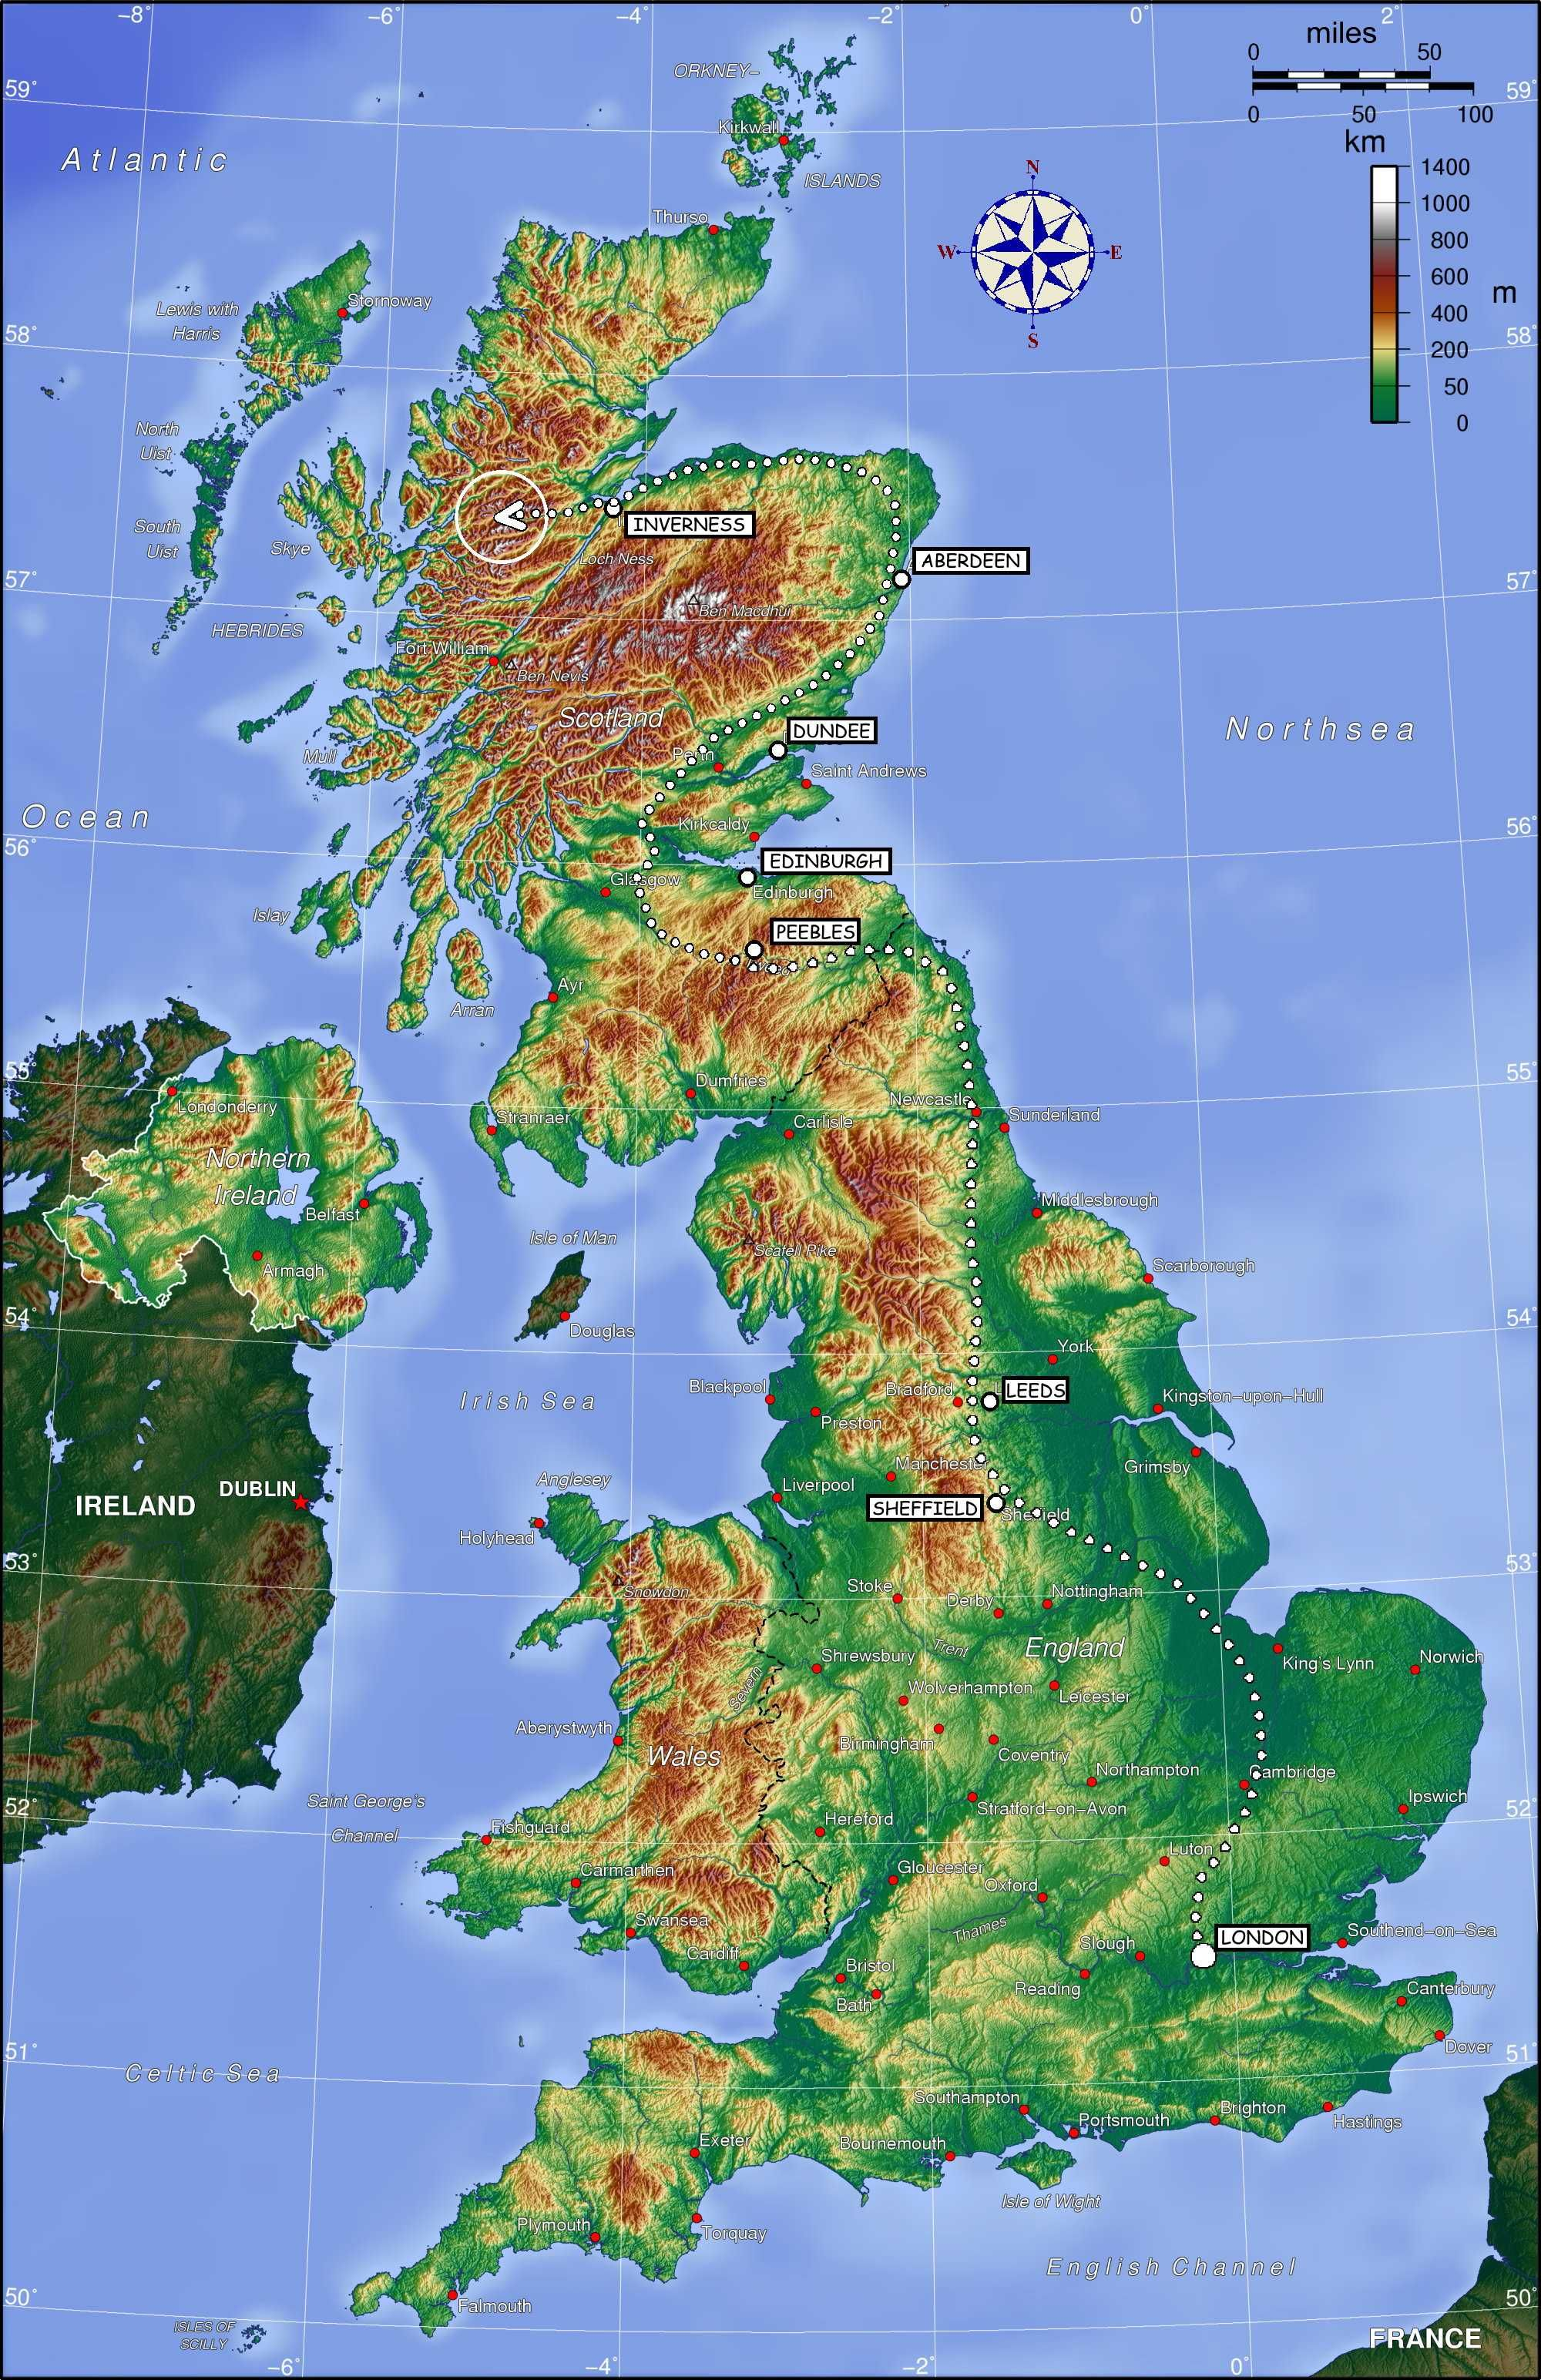 Map showing possible route of the hogwarts express through england map showing possible route of the hogwarts express through england and scotland gumiabroncs Image collections